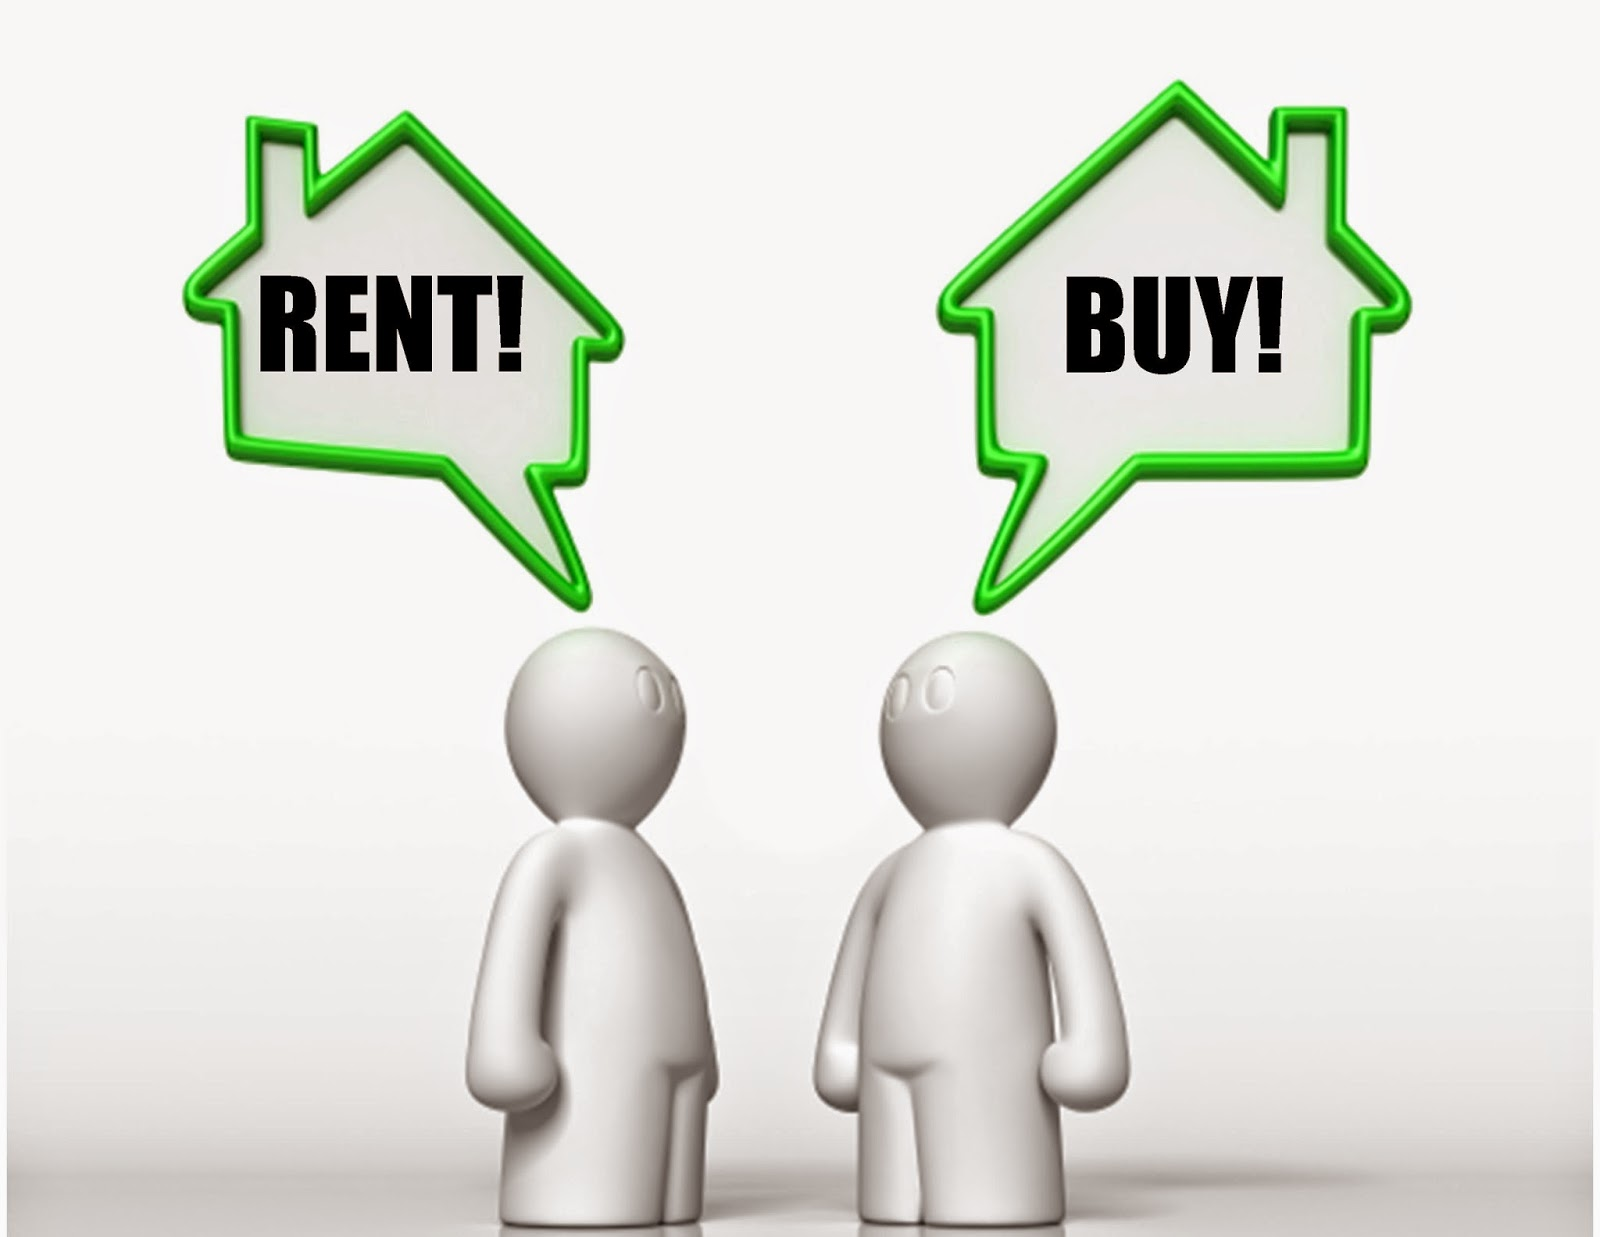 a comparison of leasing and buying essay An essay or paper on comparison and contrast of renting and owning a home renting a home to live in, rather than buying a home to live in is a much wiser decision.